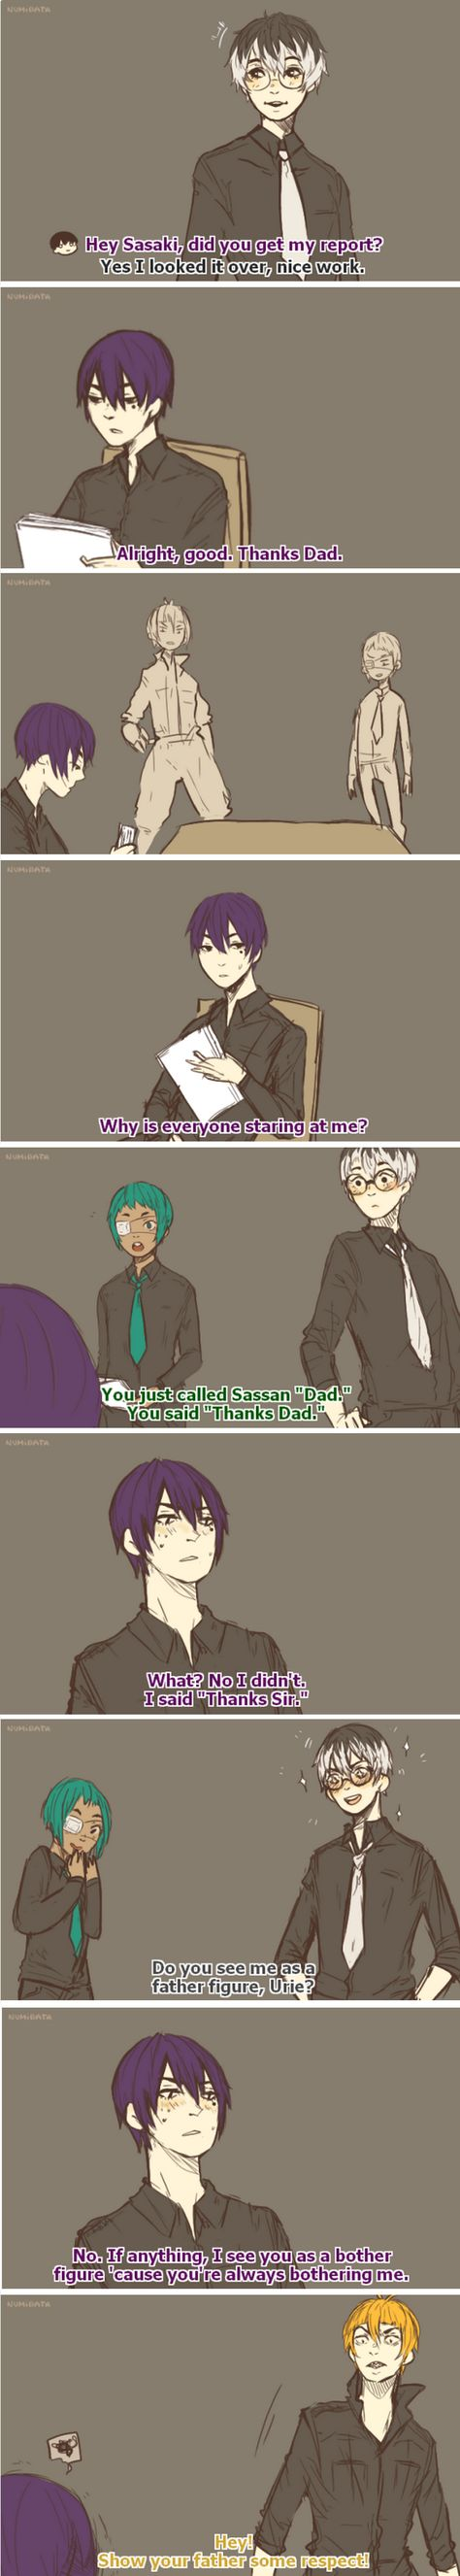 Sasaki'd just be happy that his family image is catching on :) - Haise x Urie Tokyo Ghoul re: